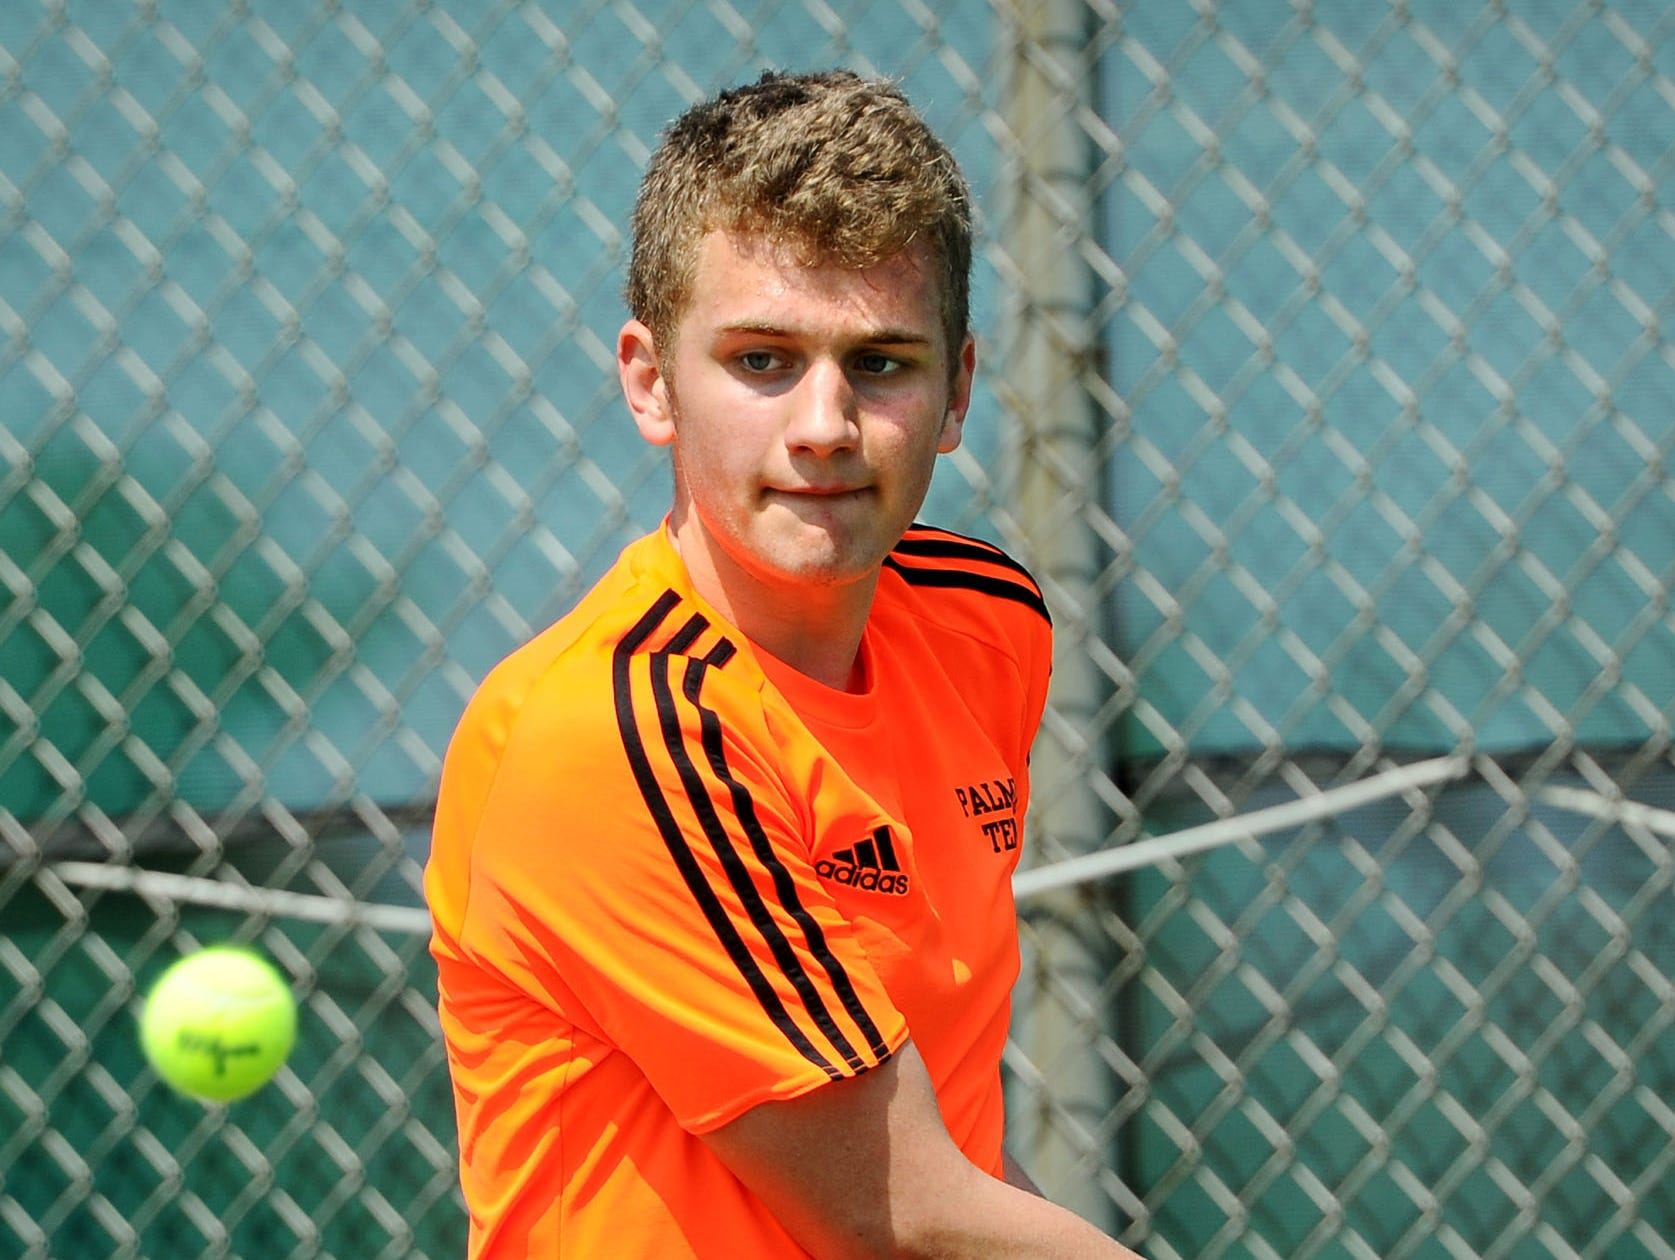 Palmyra's Ben Clary sets up for a backhand  during his match against Cedar Crest's Jack Muraika in the finals of the Lebanon County boys tennis tournament Saturday April 6,2019 at Cedar Crest High School.